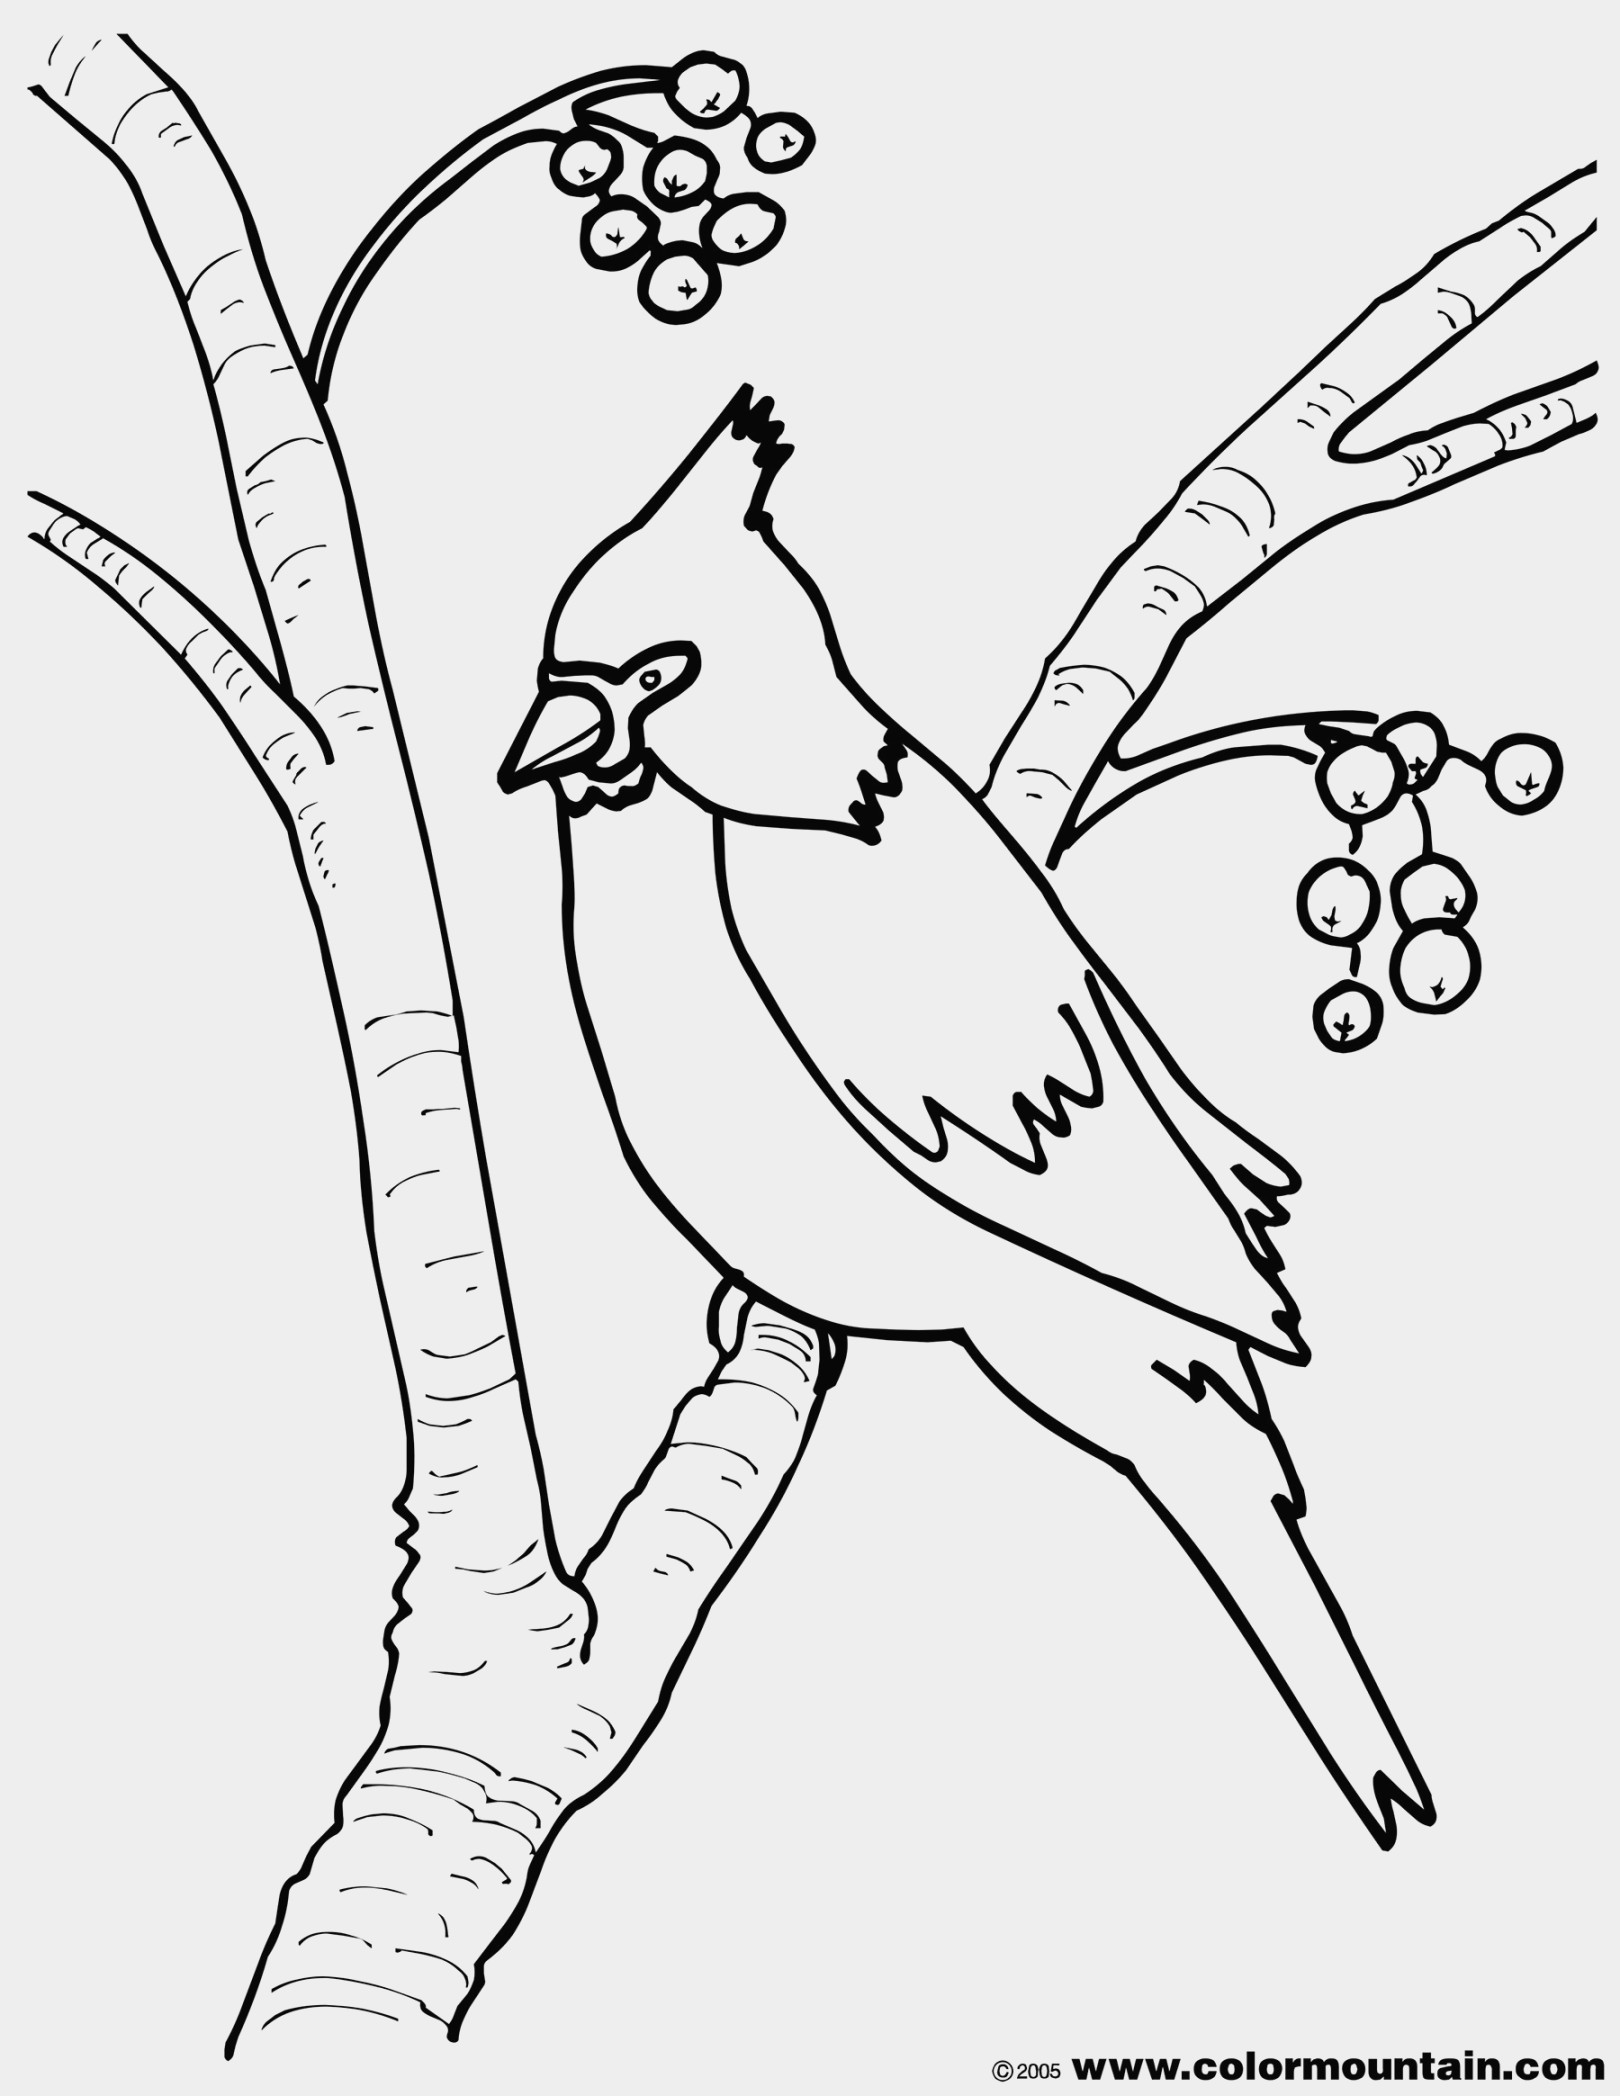 Virginia Coloring Page At Getcolorings